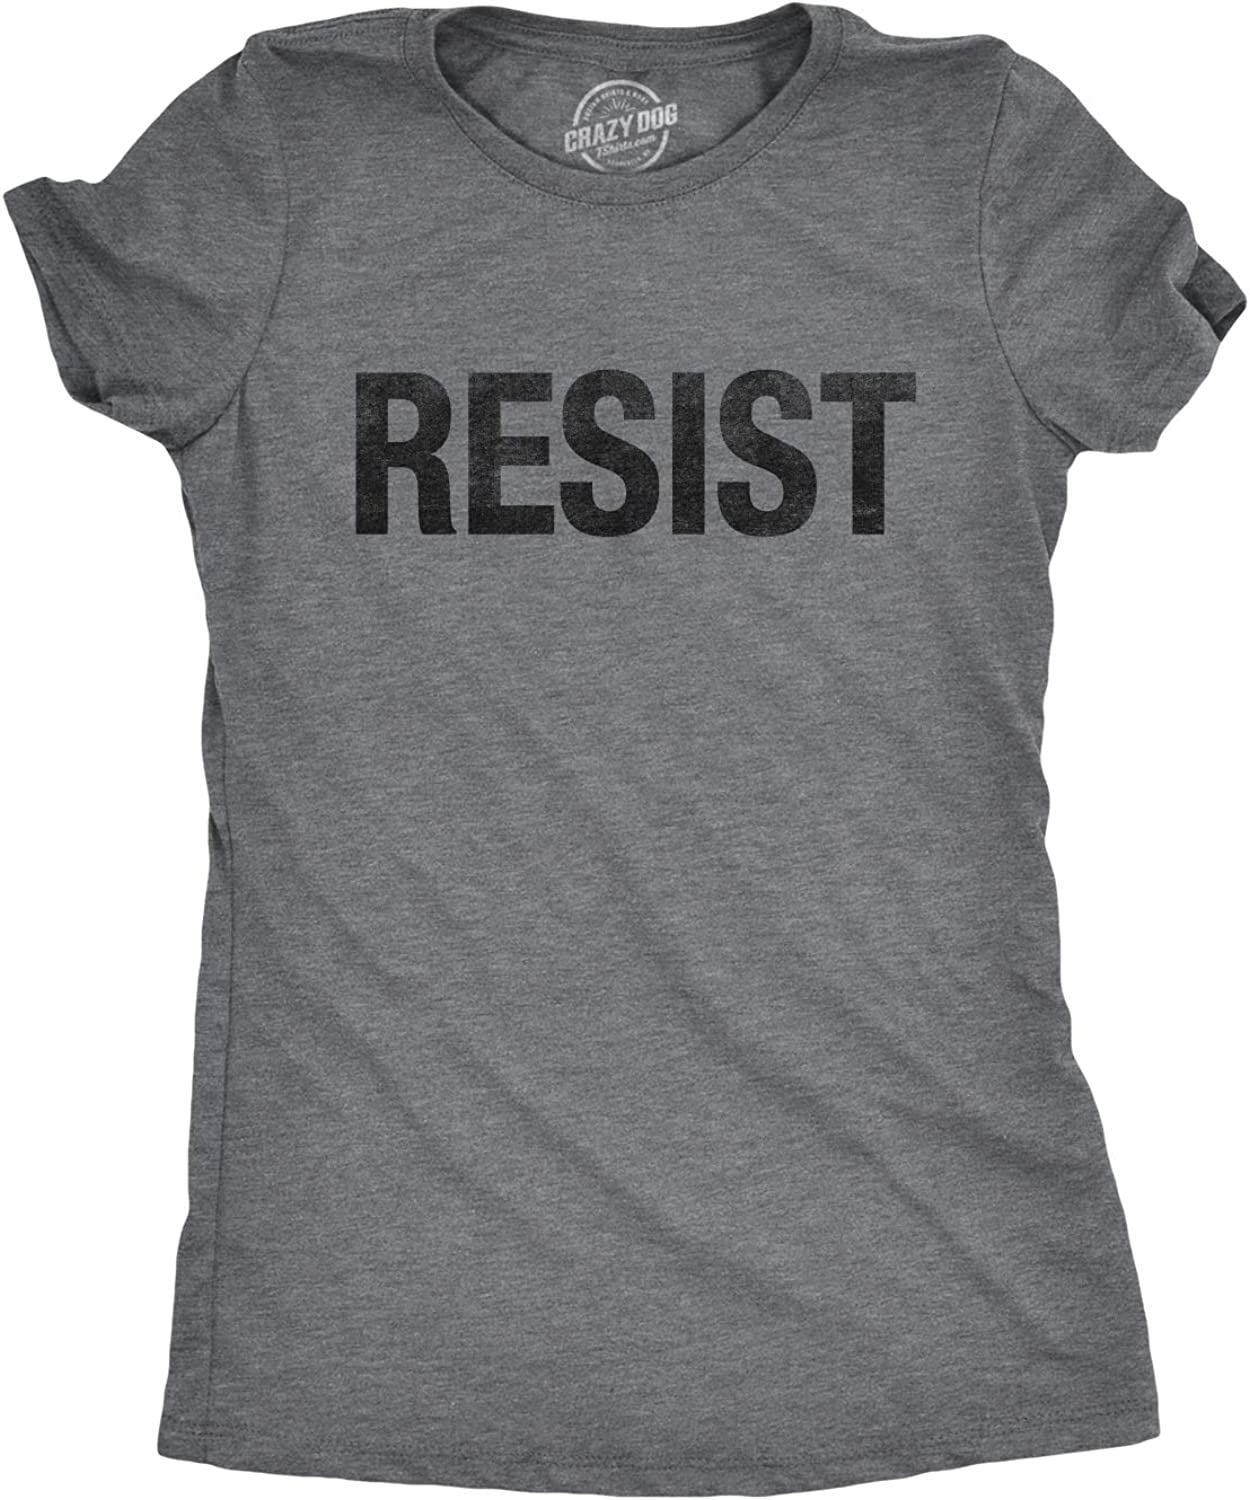 Womens Resist T Shirt Political Anti Authority Protest Tee Rebel Rally March Tee